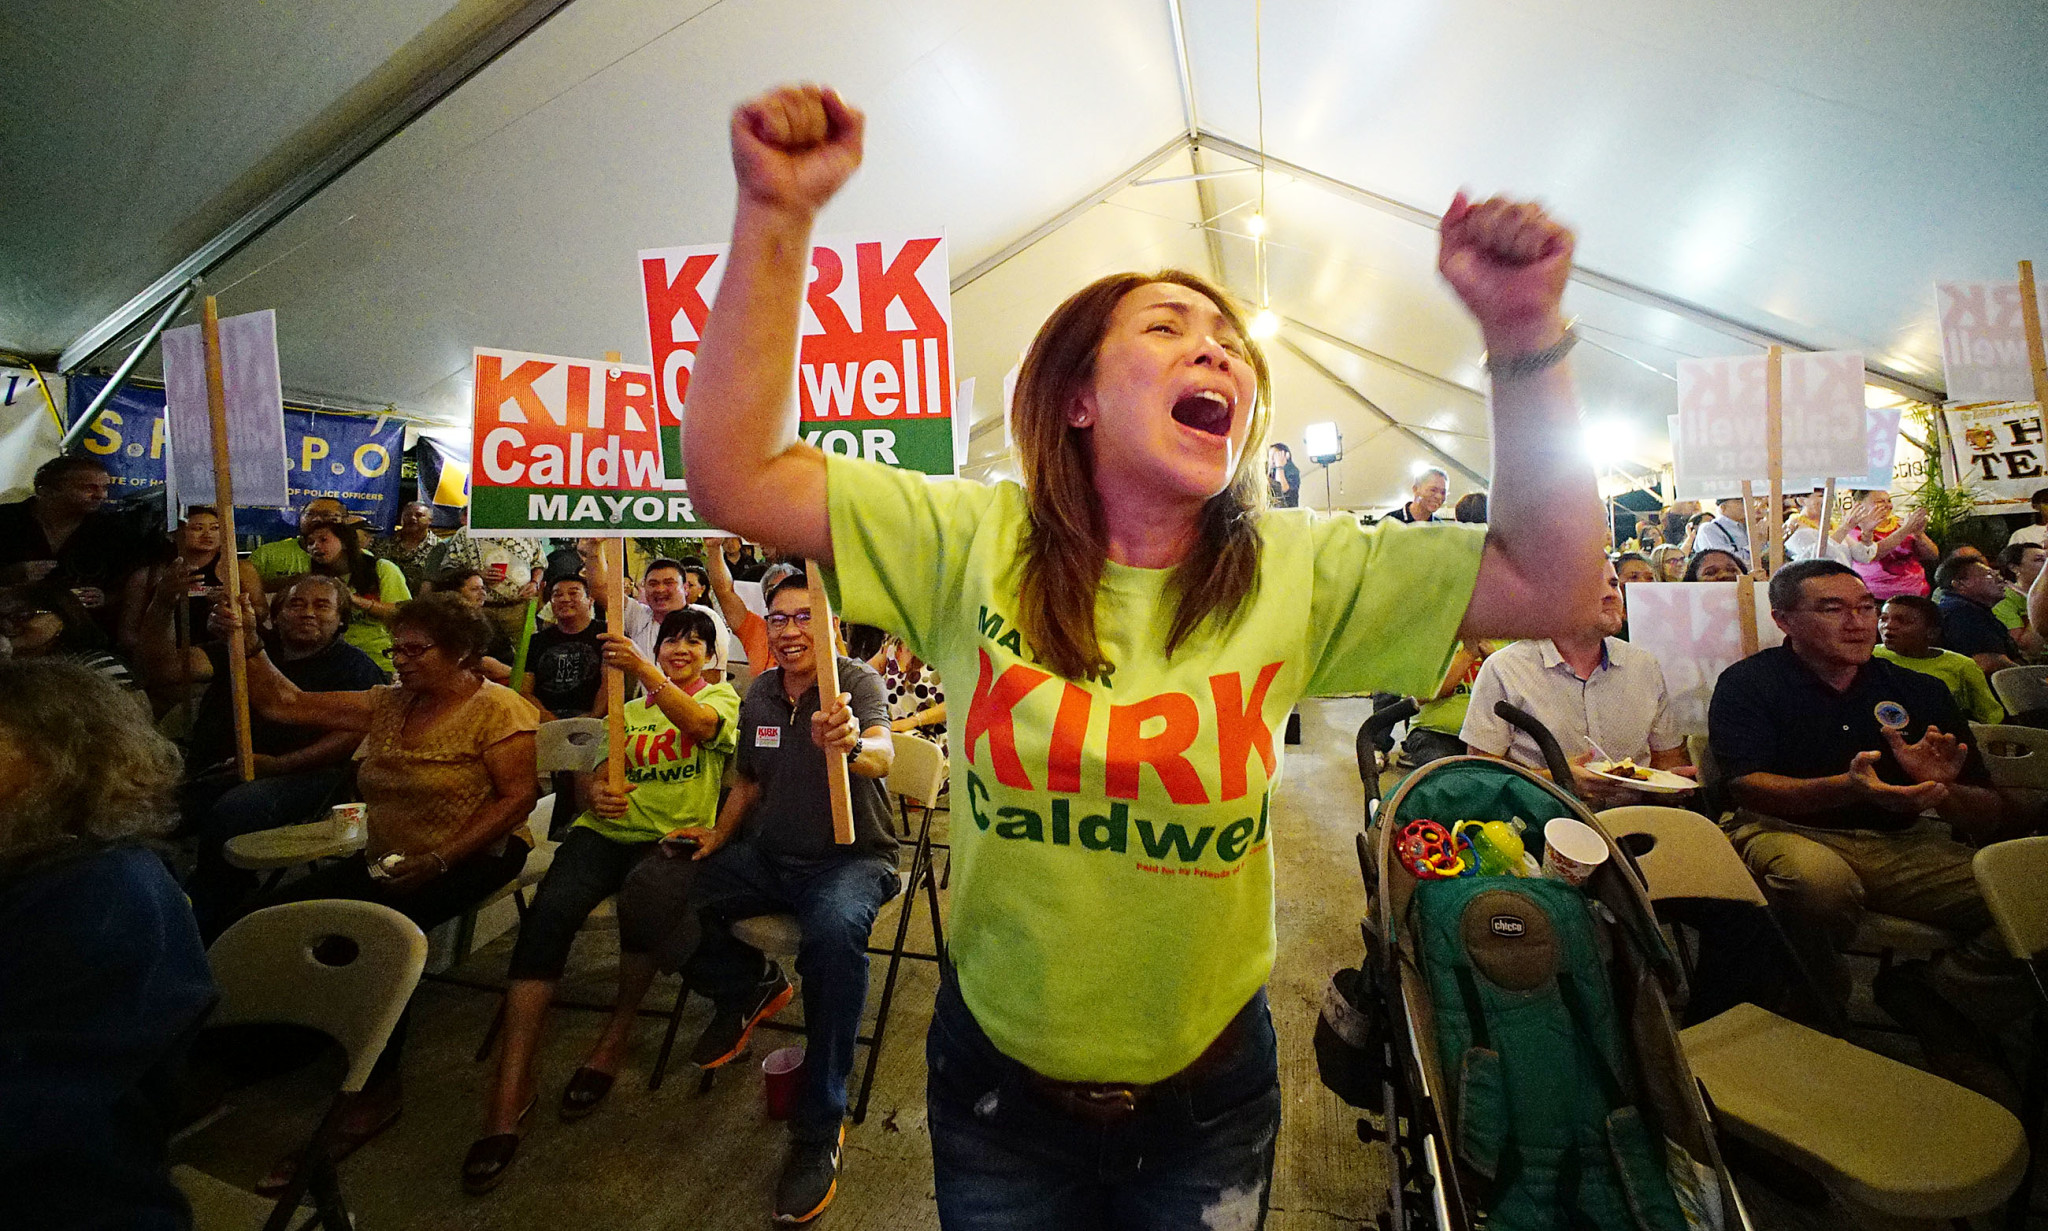 <p>Kirsty Agbayani screamed her support as a second round of returns showed Mayor Kirk Caldwell maintaining his narrow lead. (Cory Lum/Civil Beat)</p>